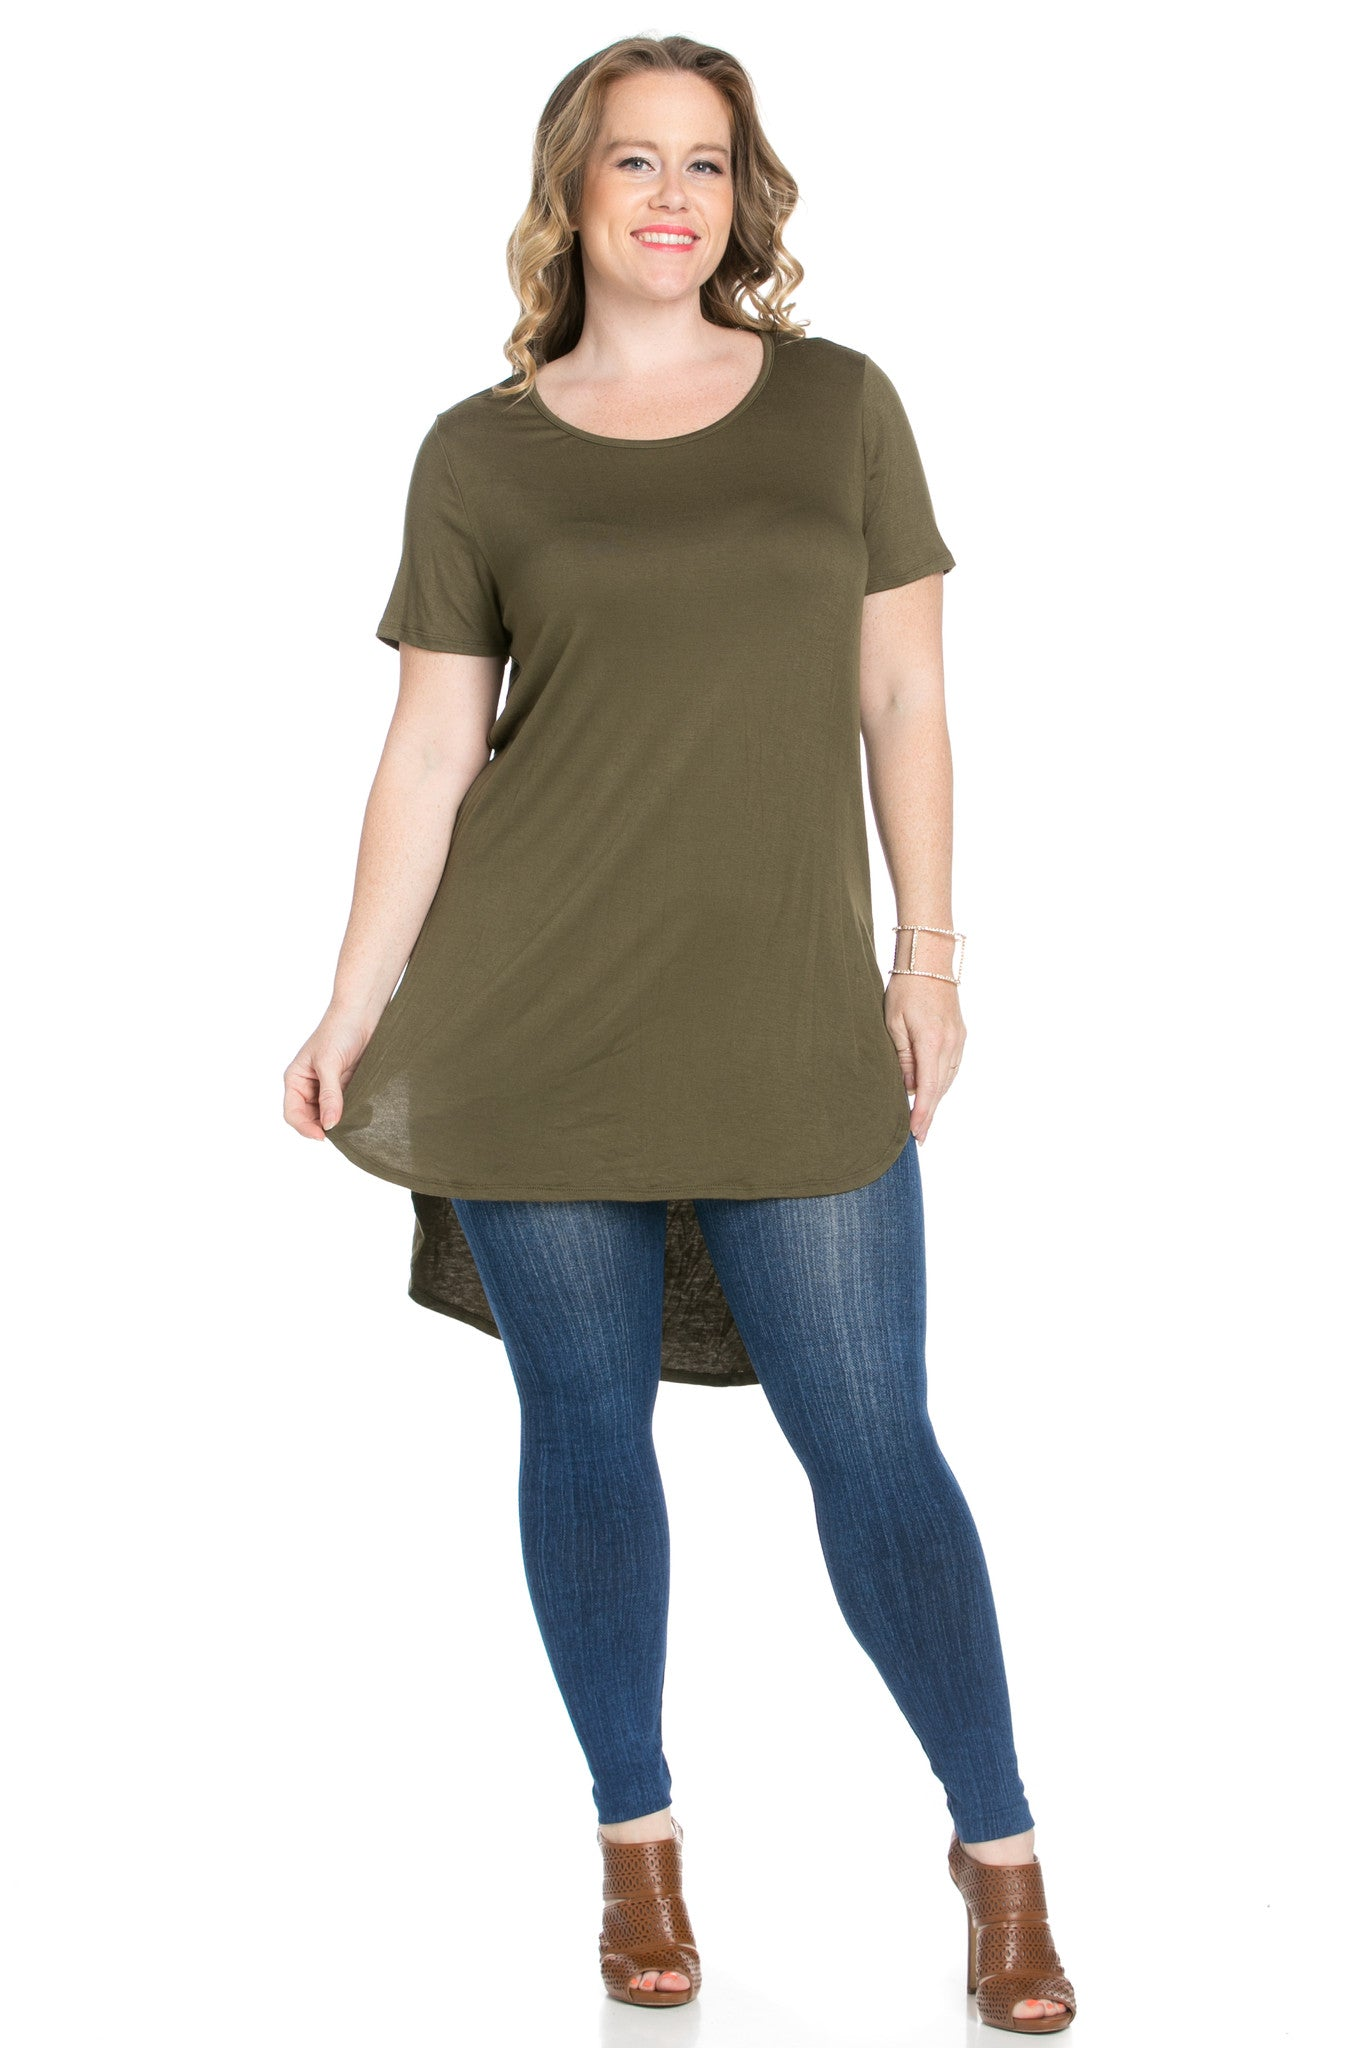 Olive Plus Size High-low Scoop Neck Shirt - Blouses - My Yuccie - 6